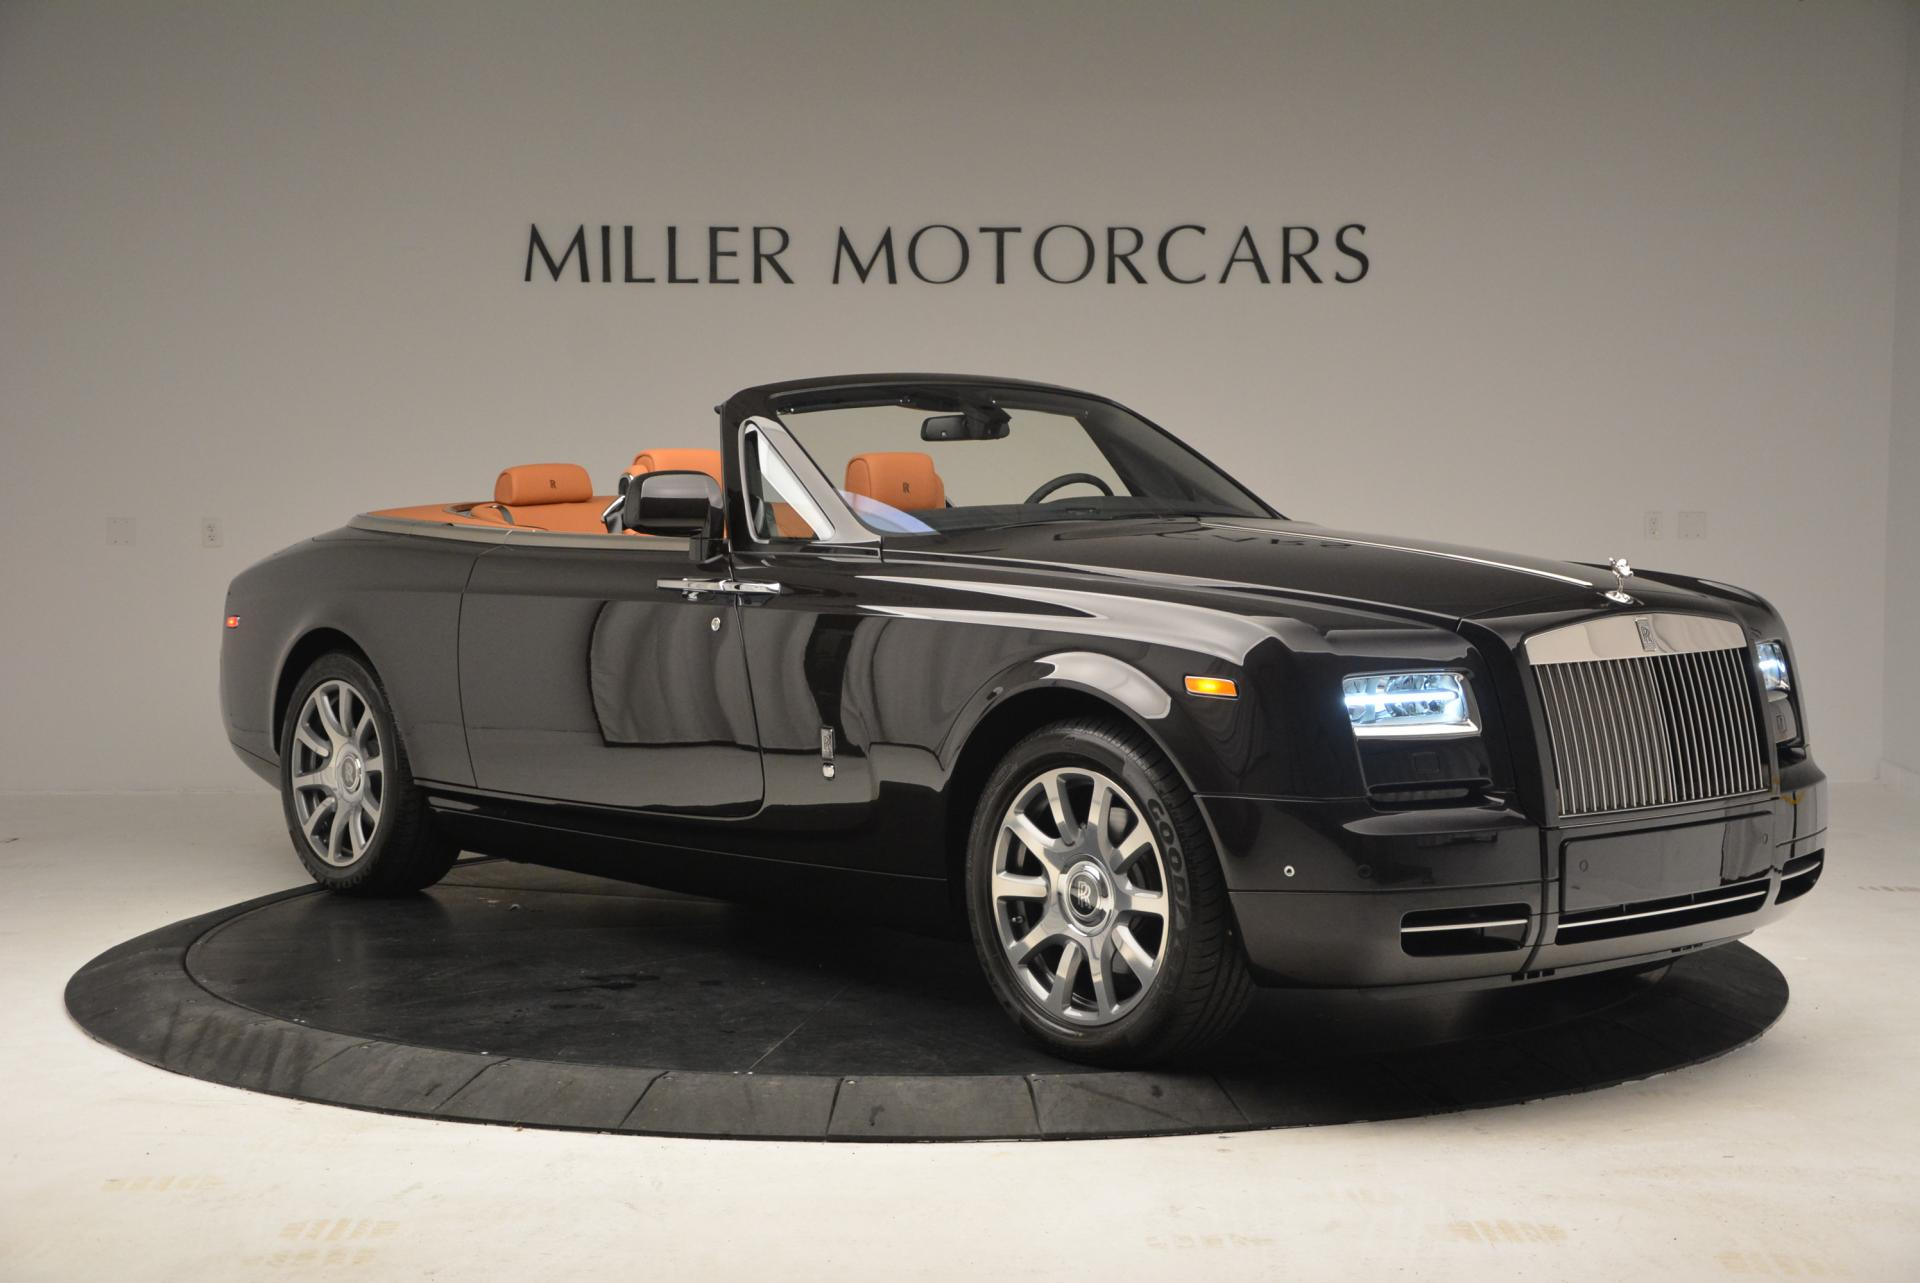 New 2016 Rolls-Royce Phantom Drophead Coupe Bespoke For Sale In Greenwich, CT 208_p10